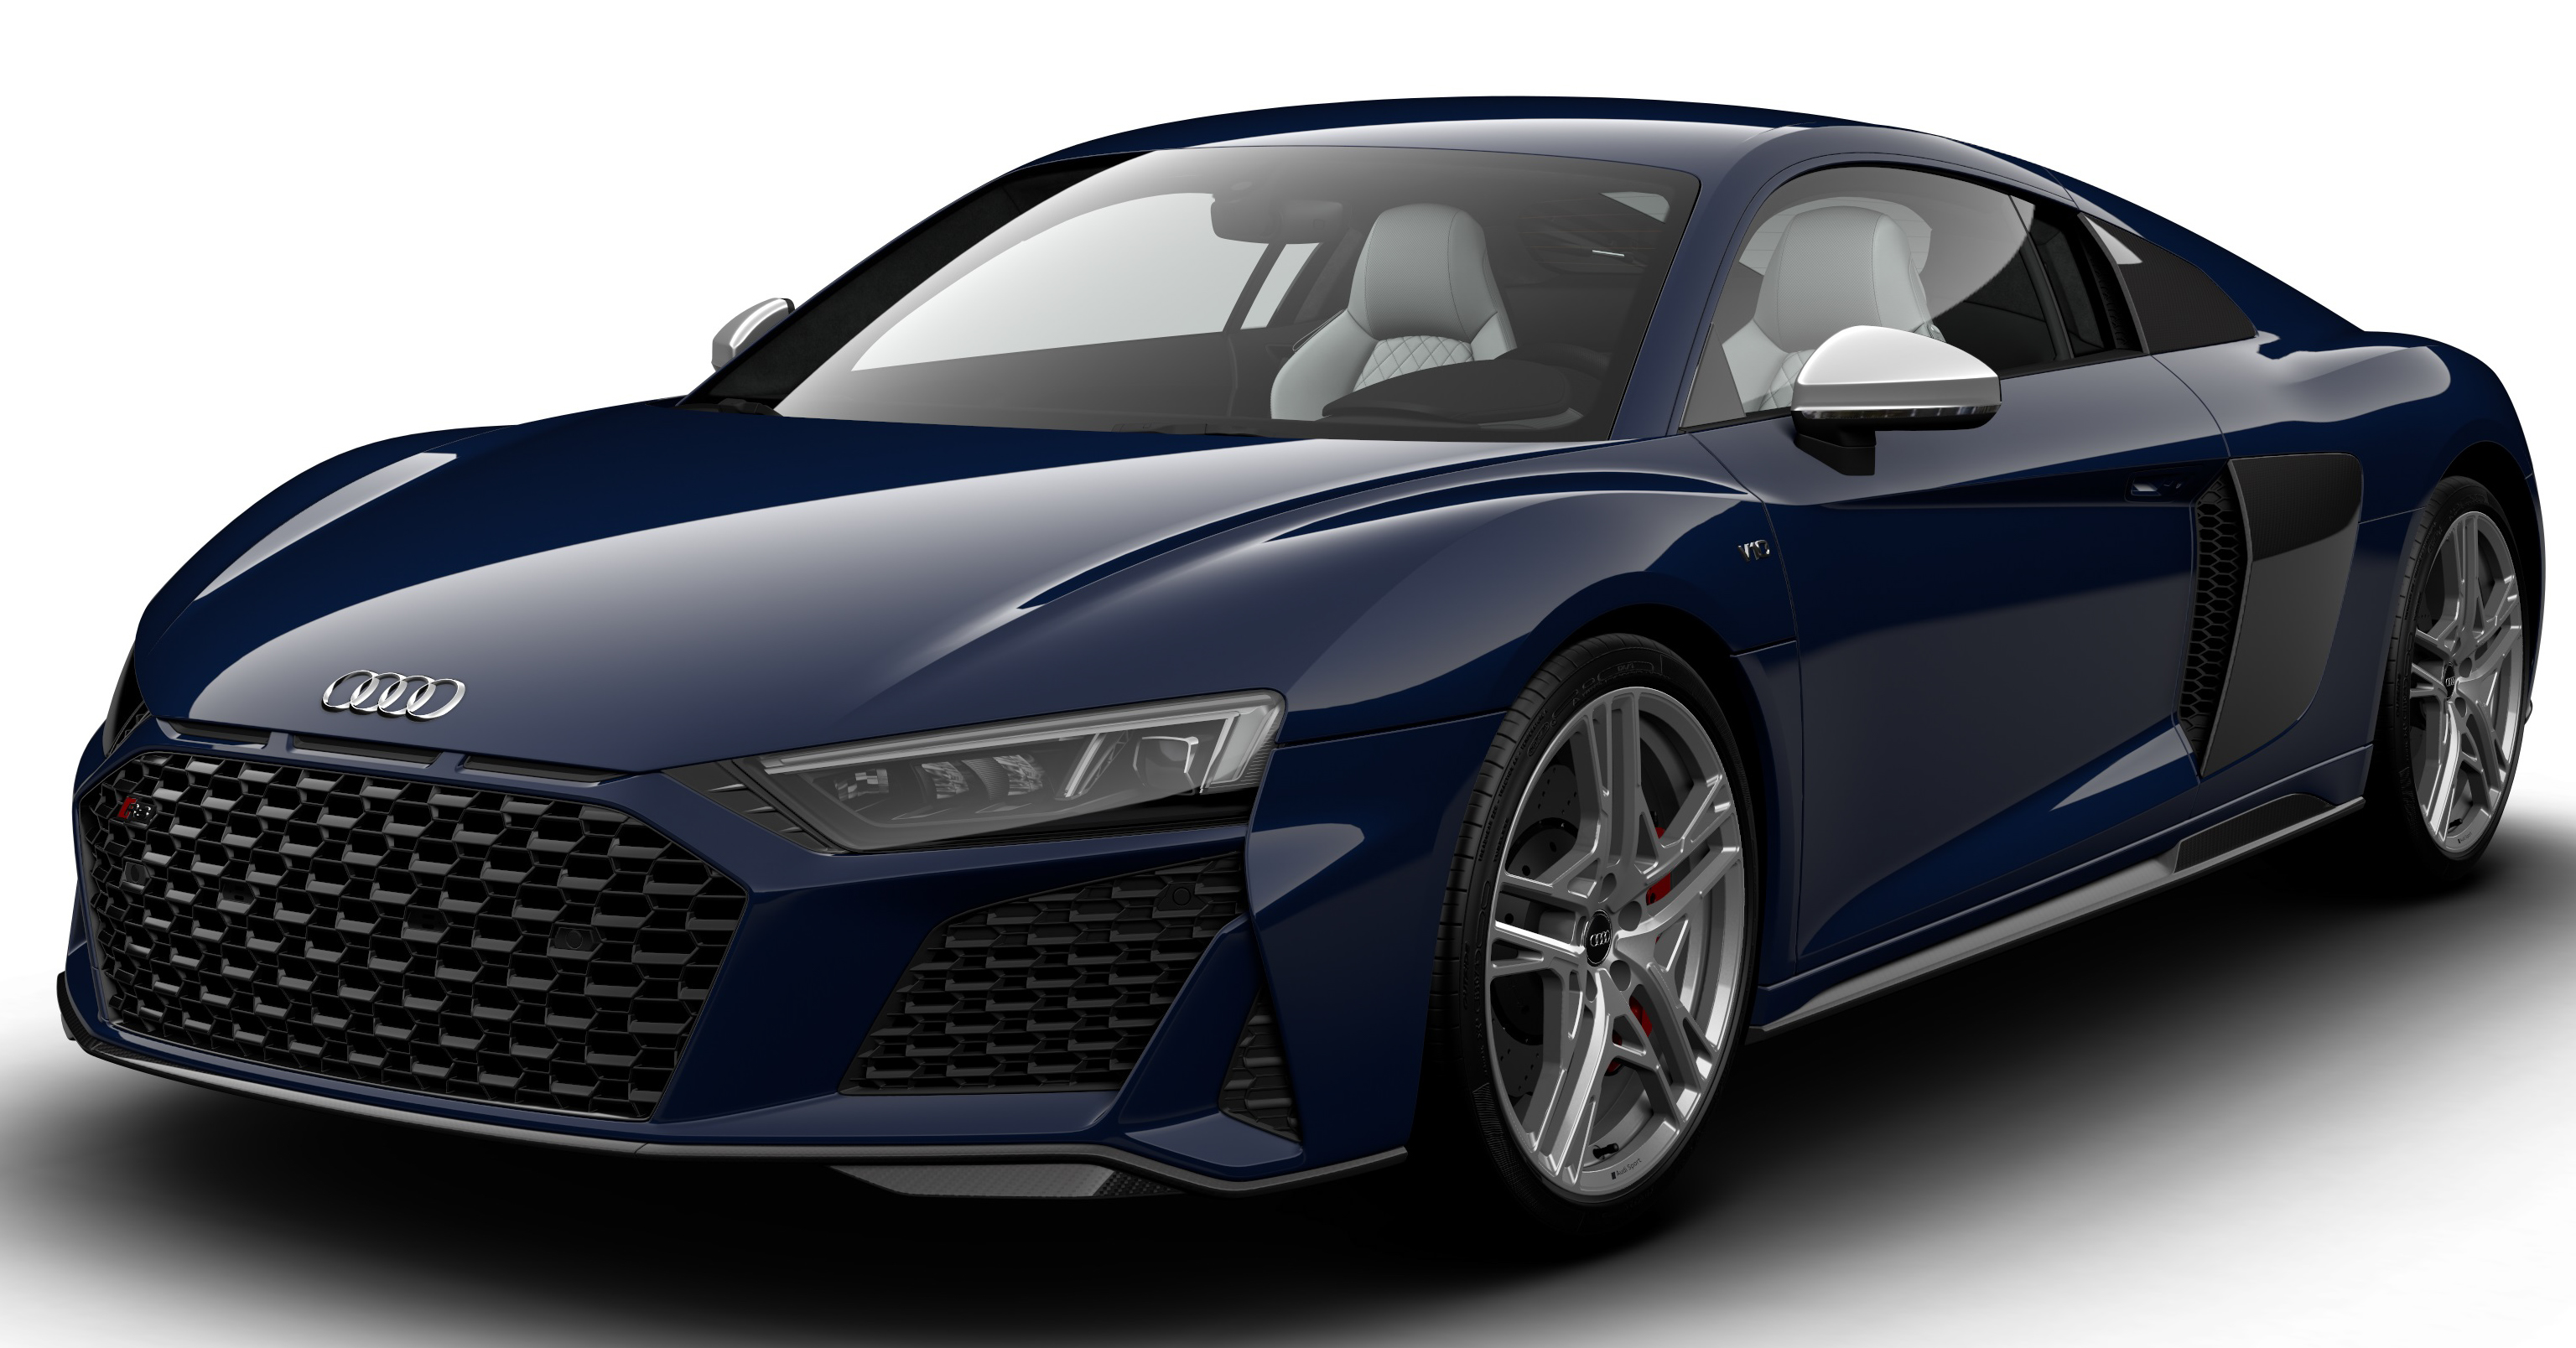 2021 Audi R8 V10 Run Out Edition Launched In The Us Paultan Org